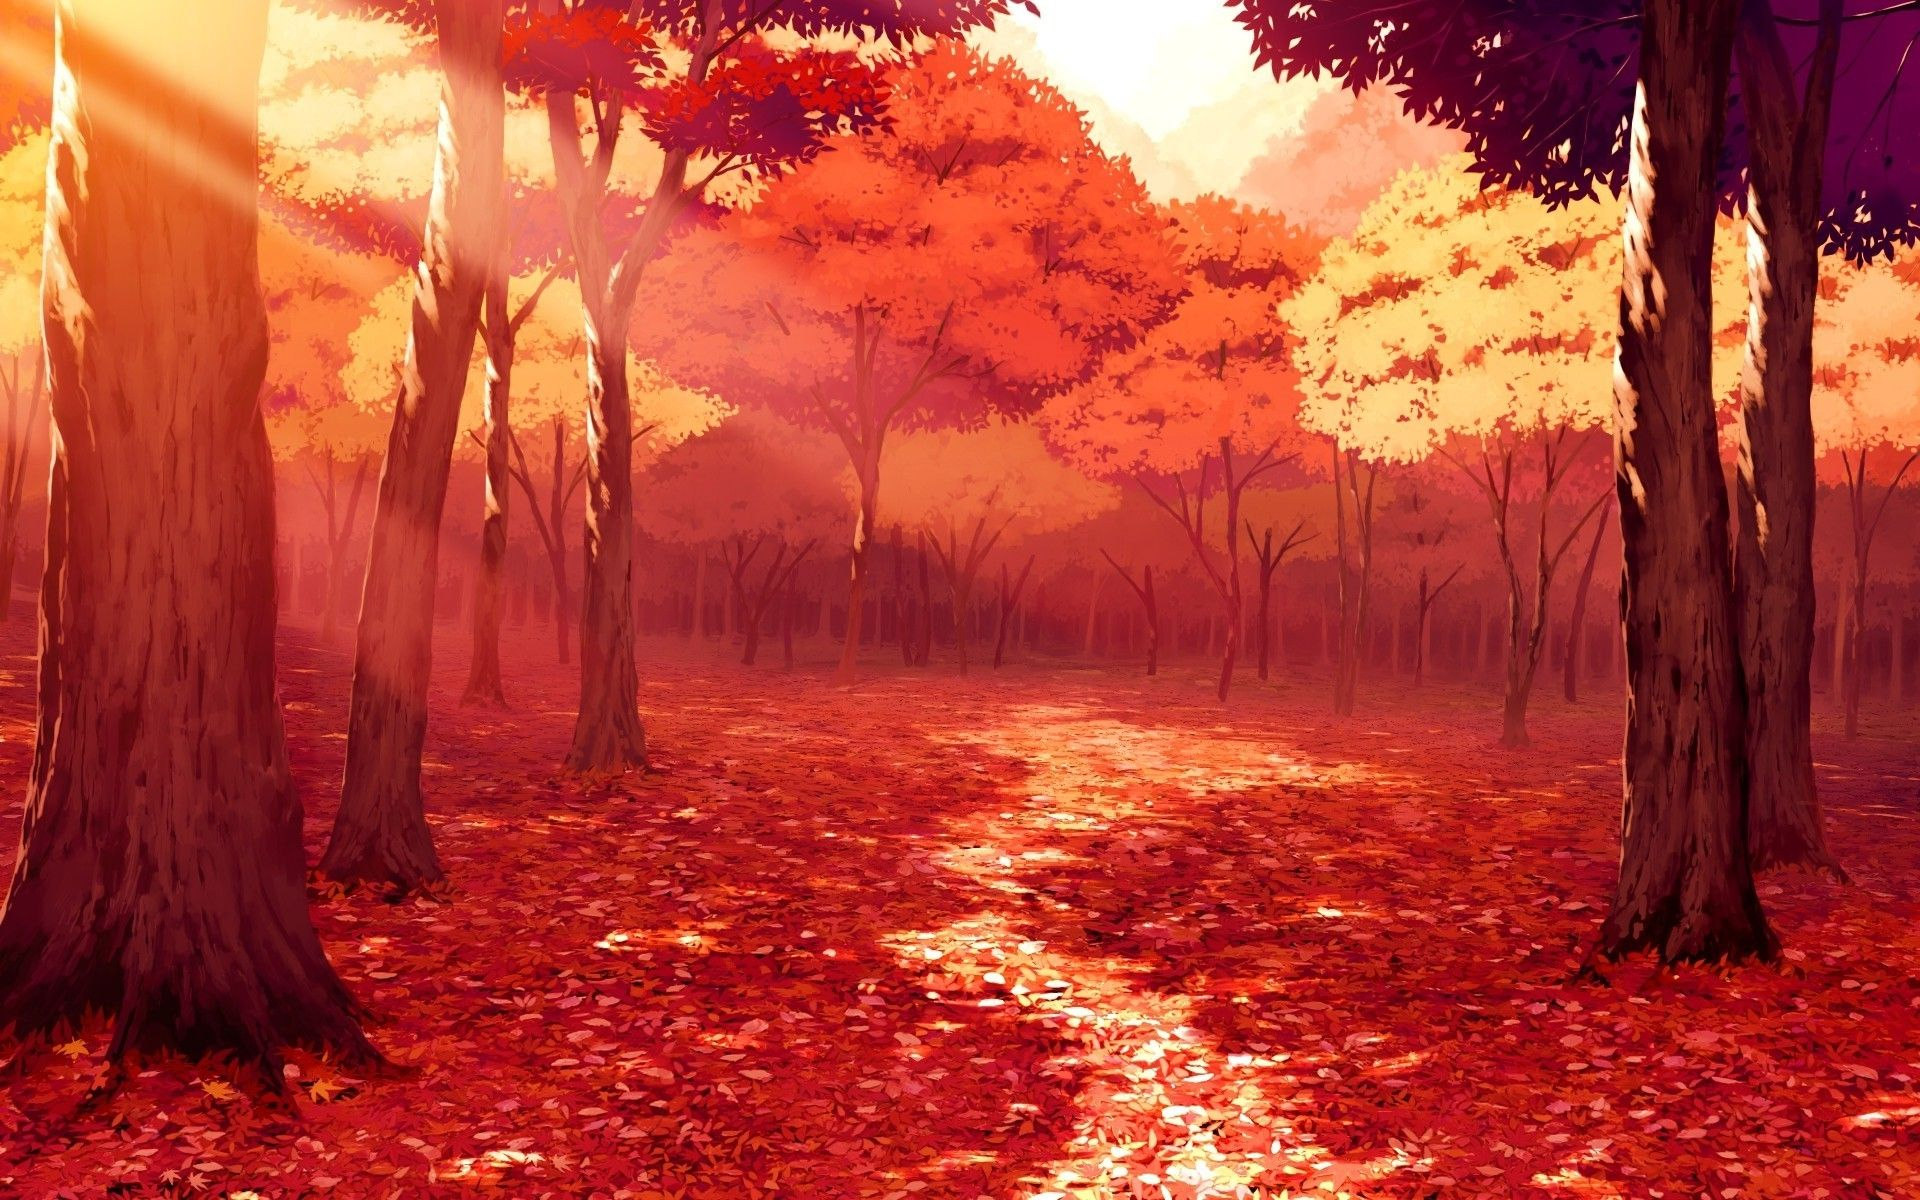 1920x1200 Drawing Artwork Fall Leaves Sunlight Forest Red Anime Wallpapers Hd Desktop And Mobile Backg Anime Scenery Autumn Scenery Scenery Wallpaper